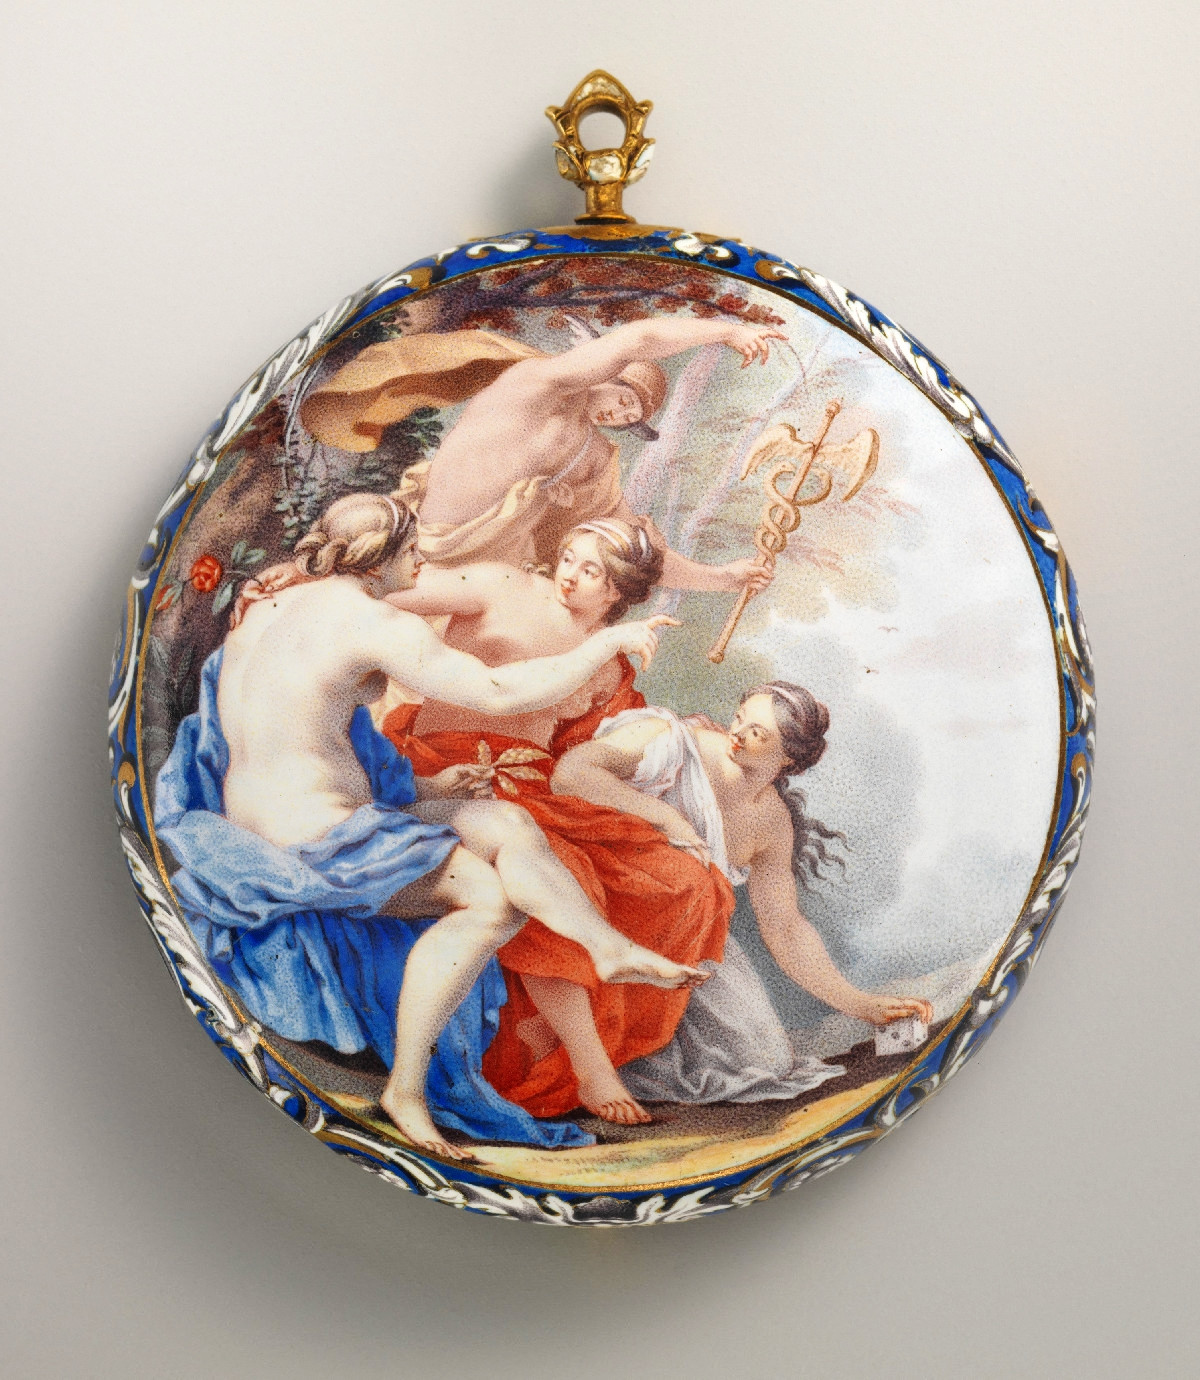 1645. Watch. French, probably Paris case with Dutch, The Hague watch. Case and dial enameled gold; Movement gilded brass and steel, partly blued. metmuseum